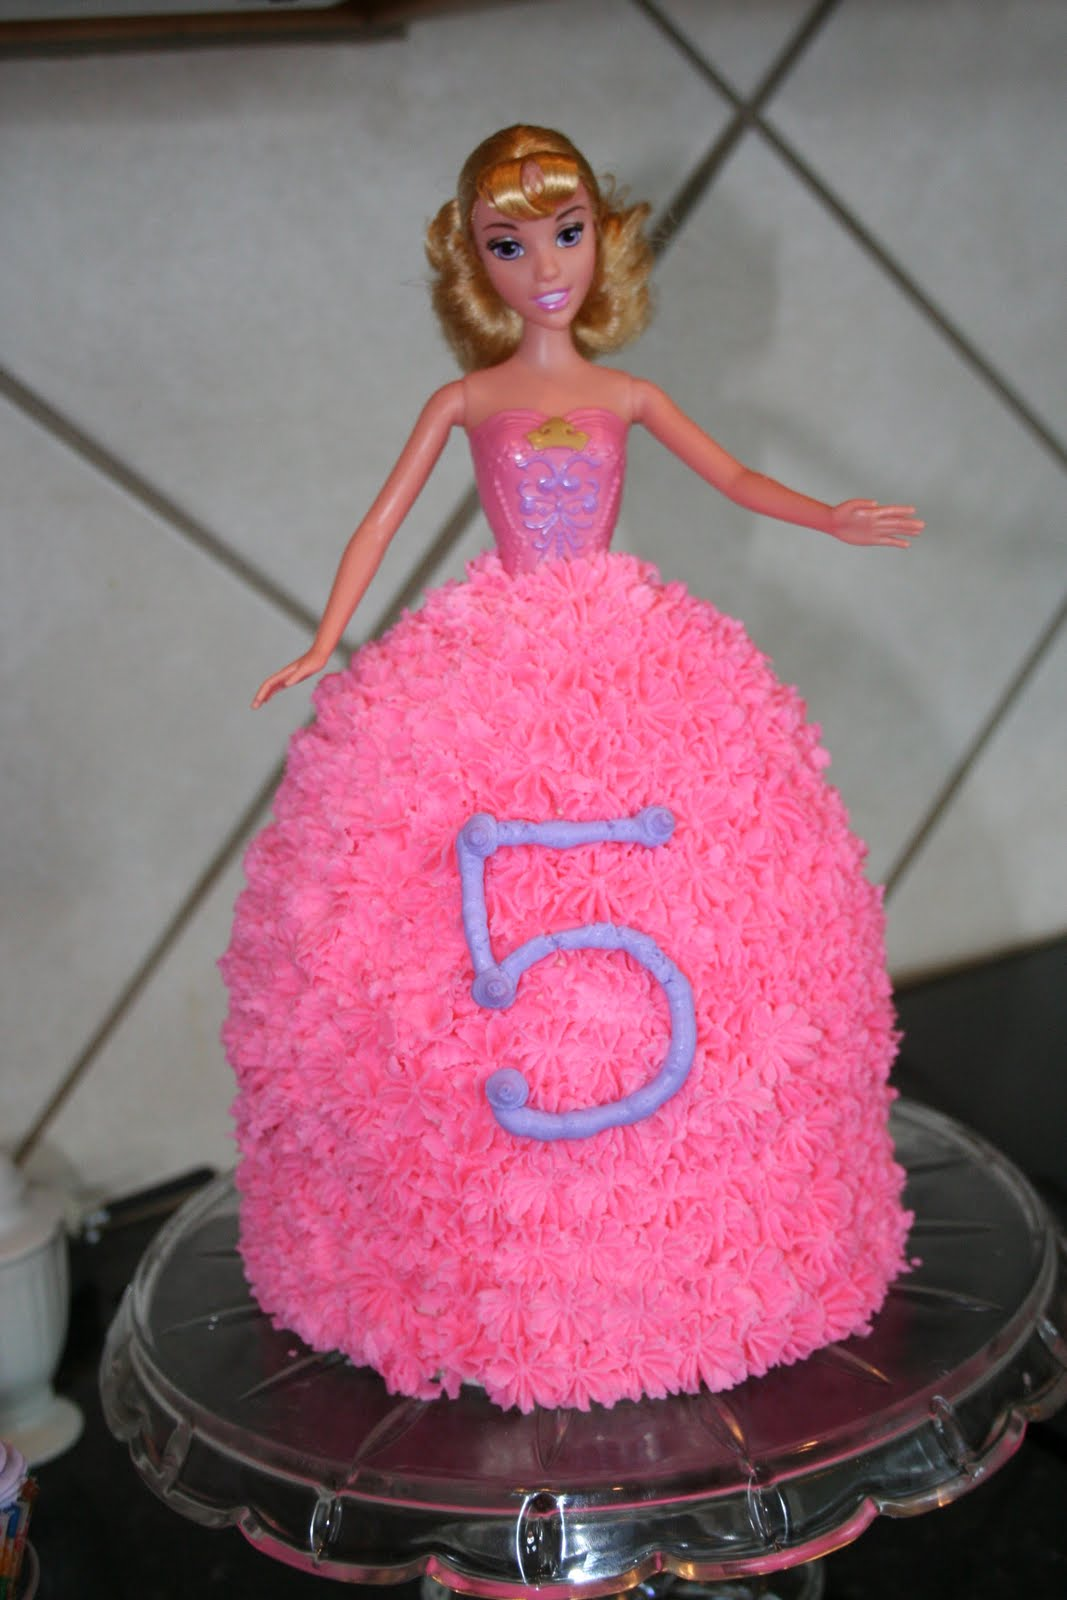 Ginnies Gems Granddaughters 5th Birthday Barbie Cake